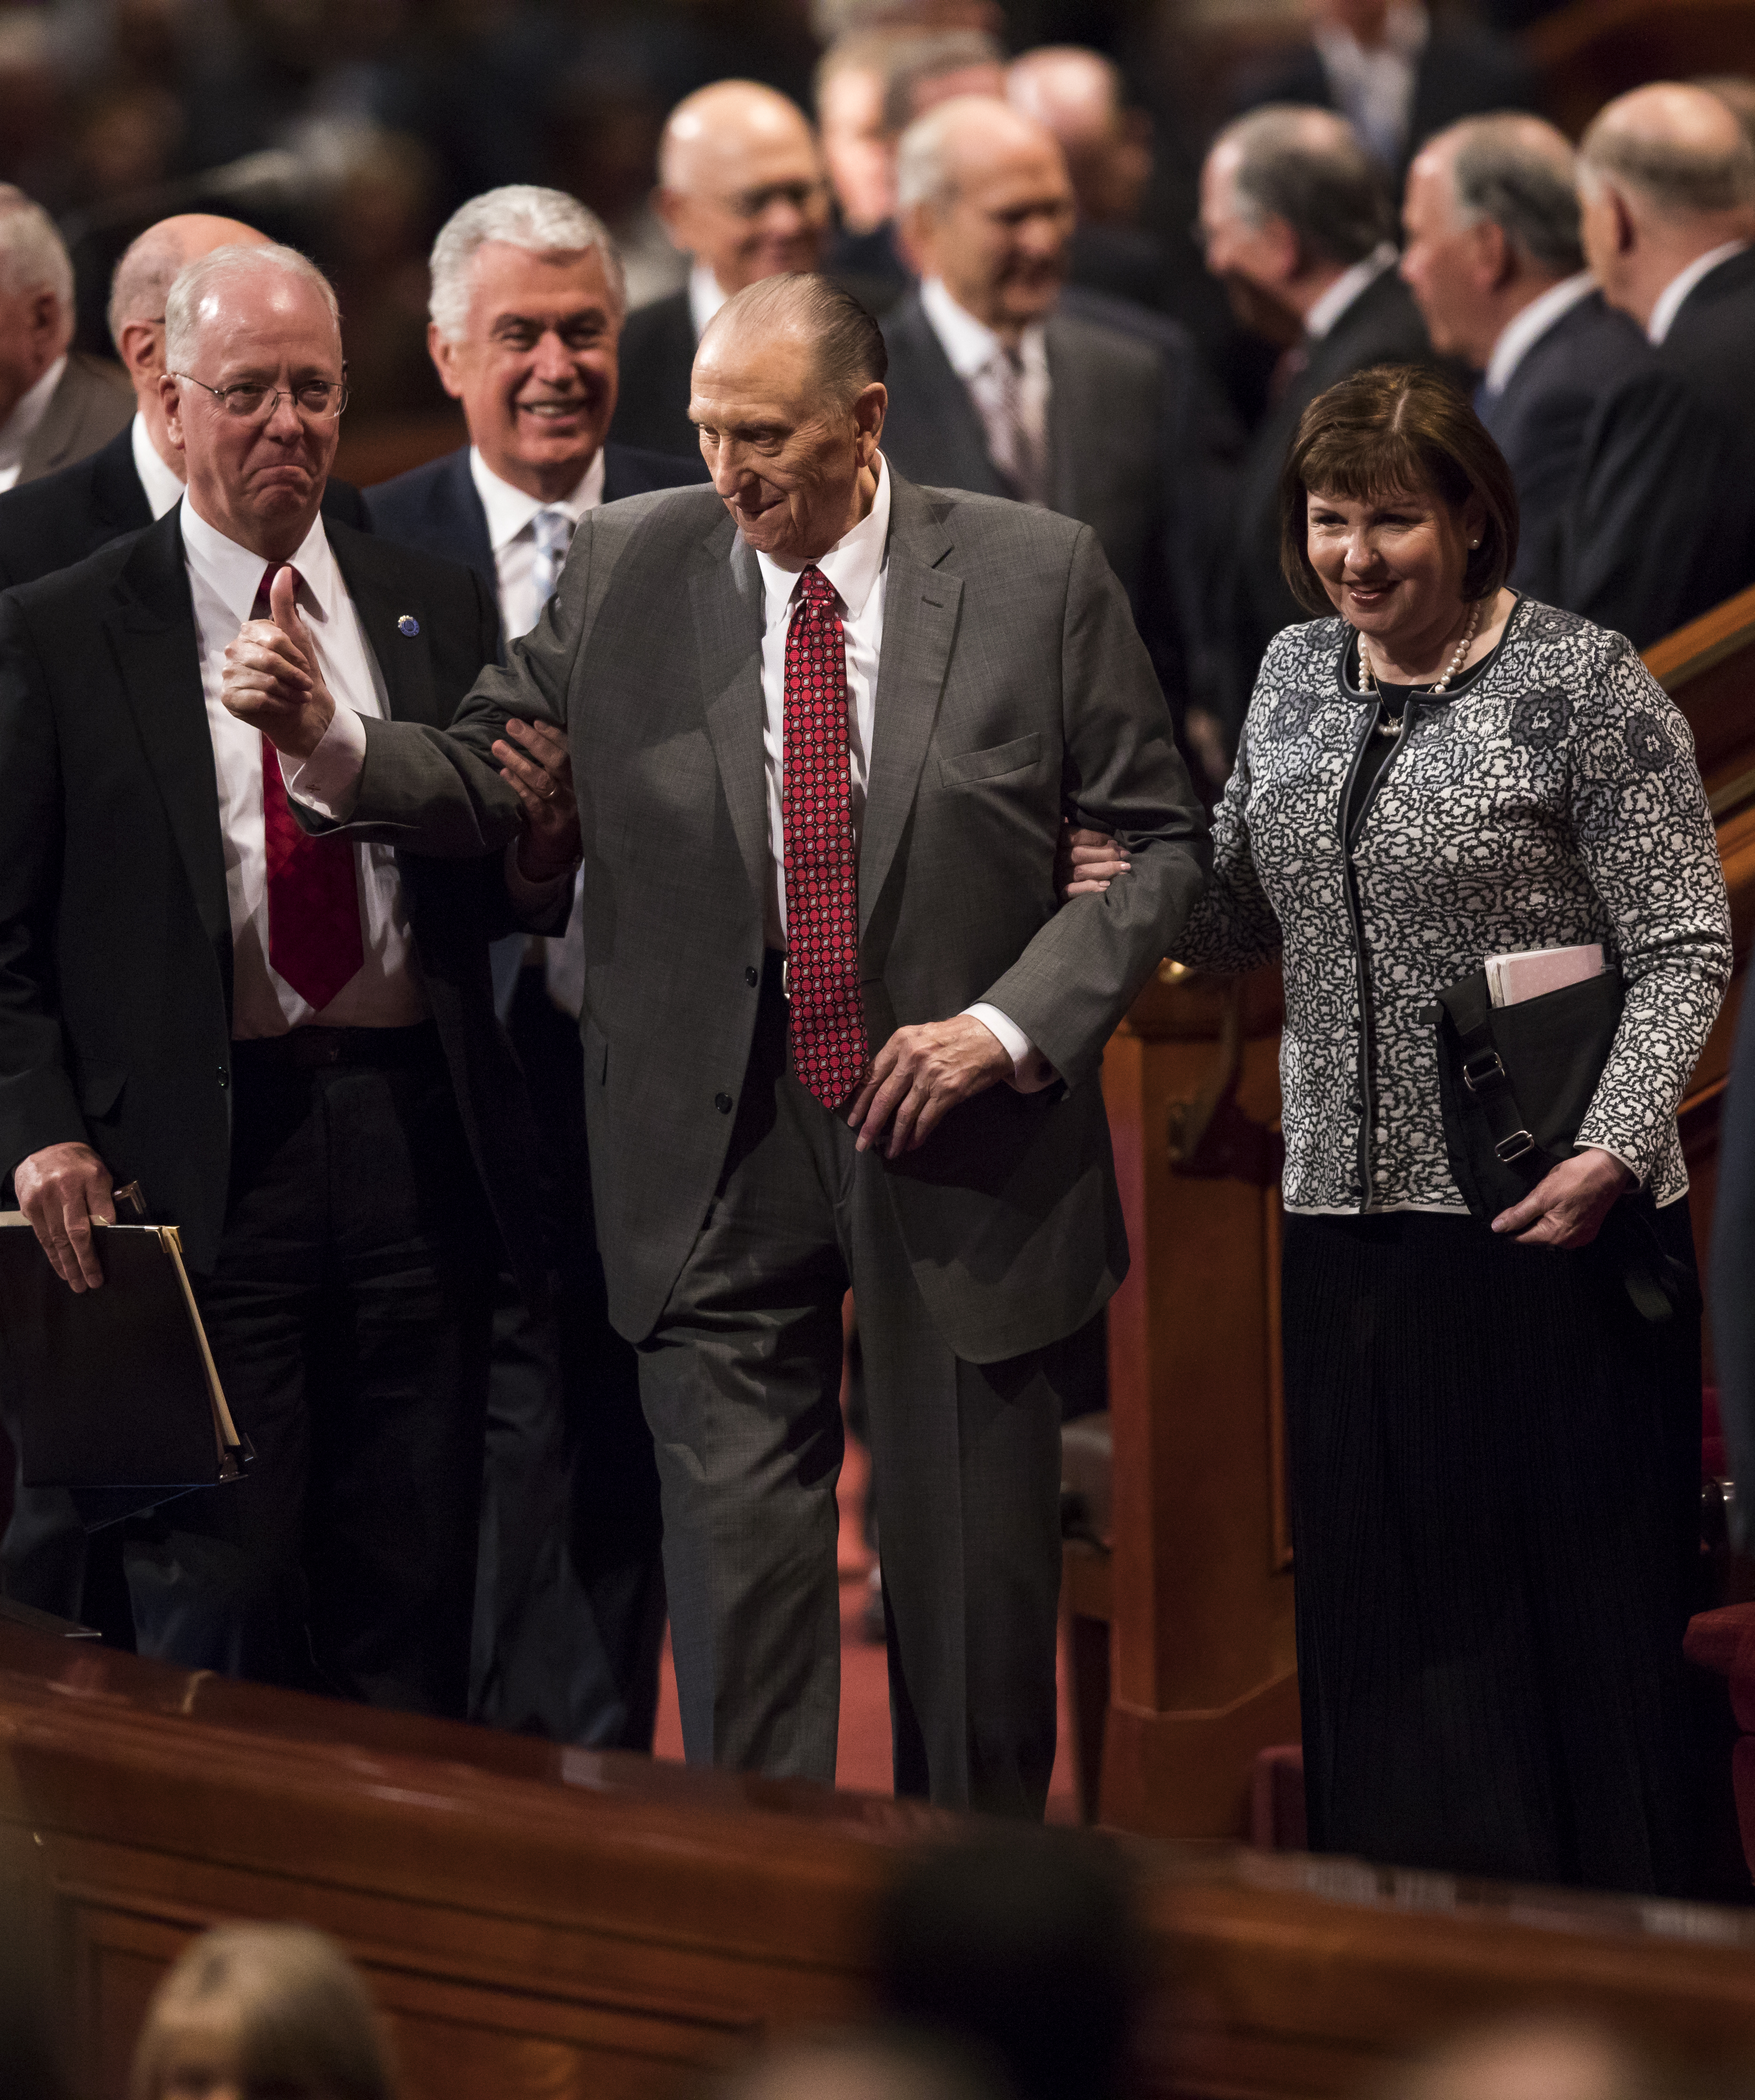 President Thomas S. Monson exits the Saturday morning session of the April 2017 general conference. (Photo: MormonNewsroom.org){&amp;nbsp;}<p></p>